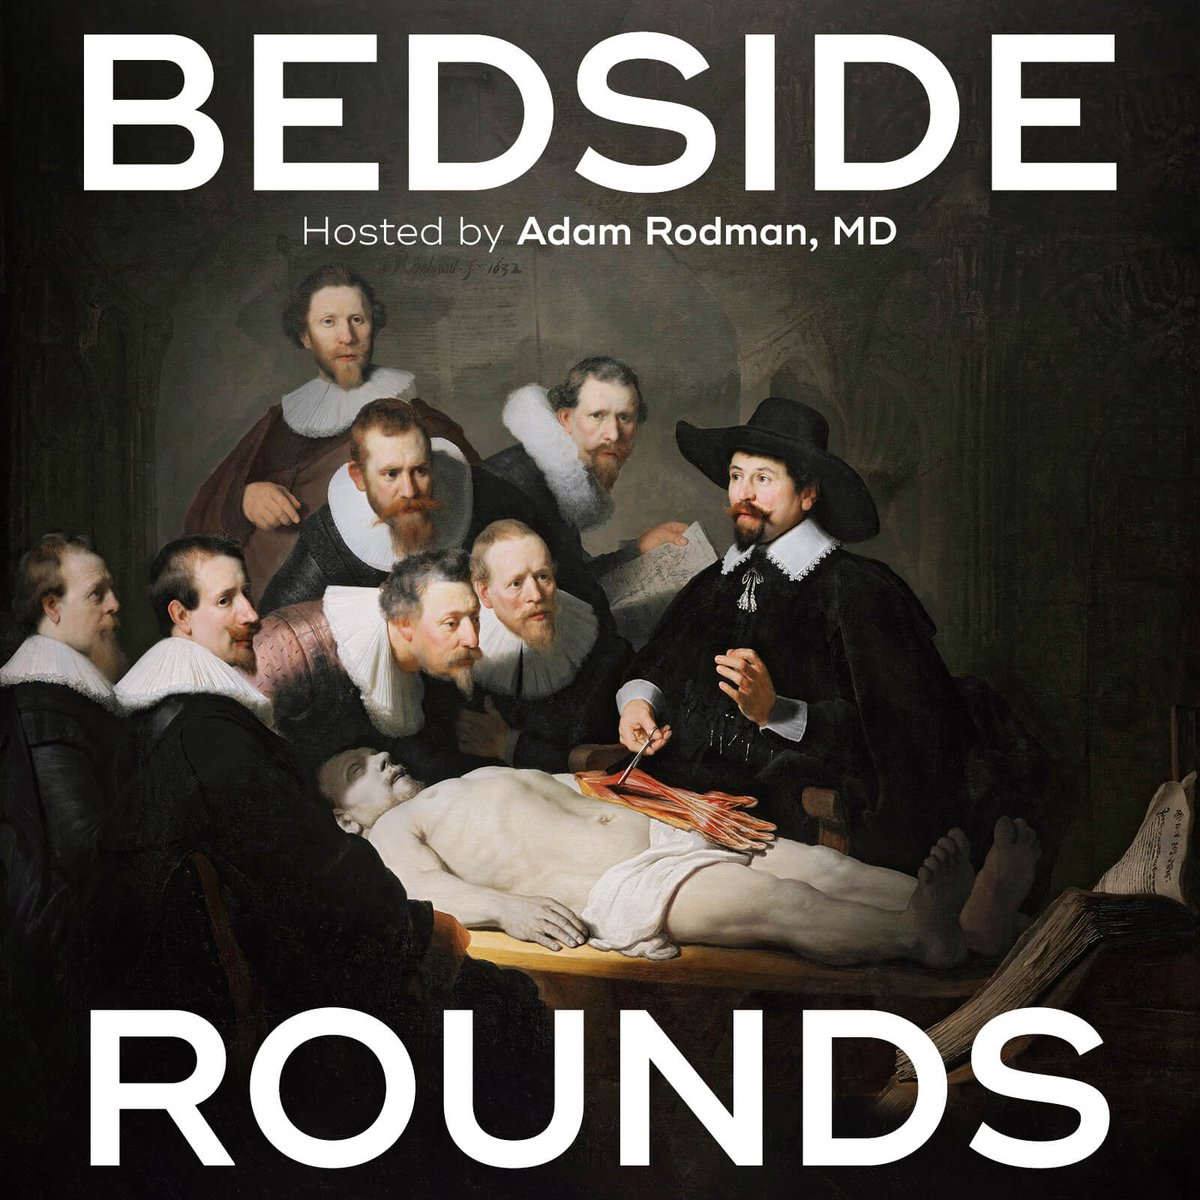 Are you a (student/resident/fellow/attending) member of @ACPinternists? Do you like @BedsideRounds? Do you want to be involved in the peer-review process (especially good if youre interested in becoming a Fellow)? If so -- send me a message and Ill e-mail you!